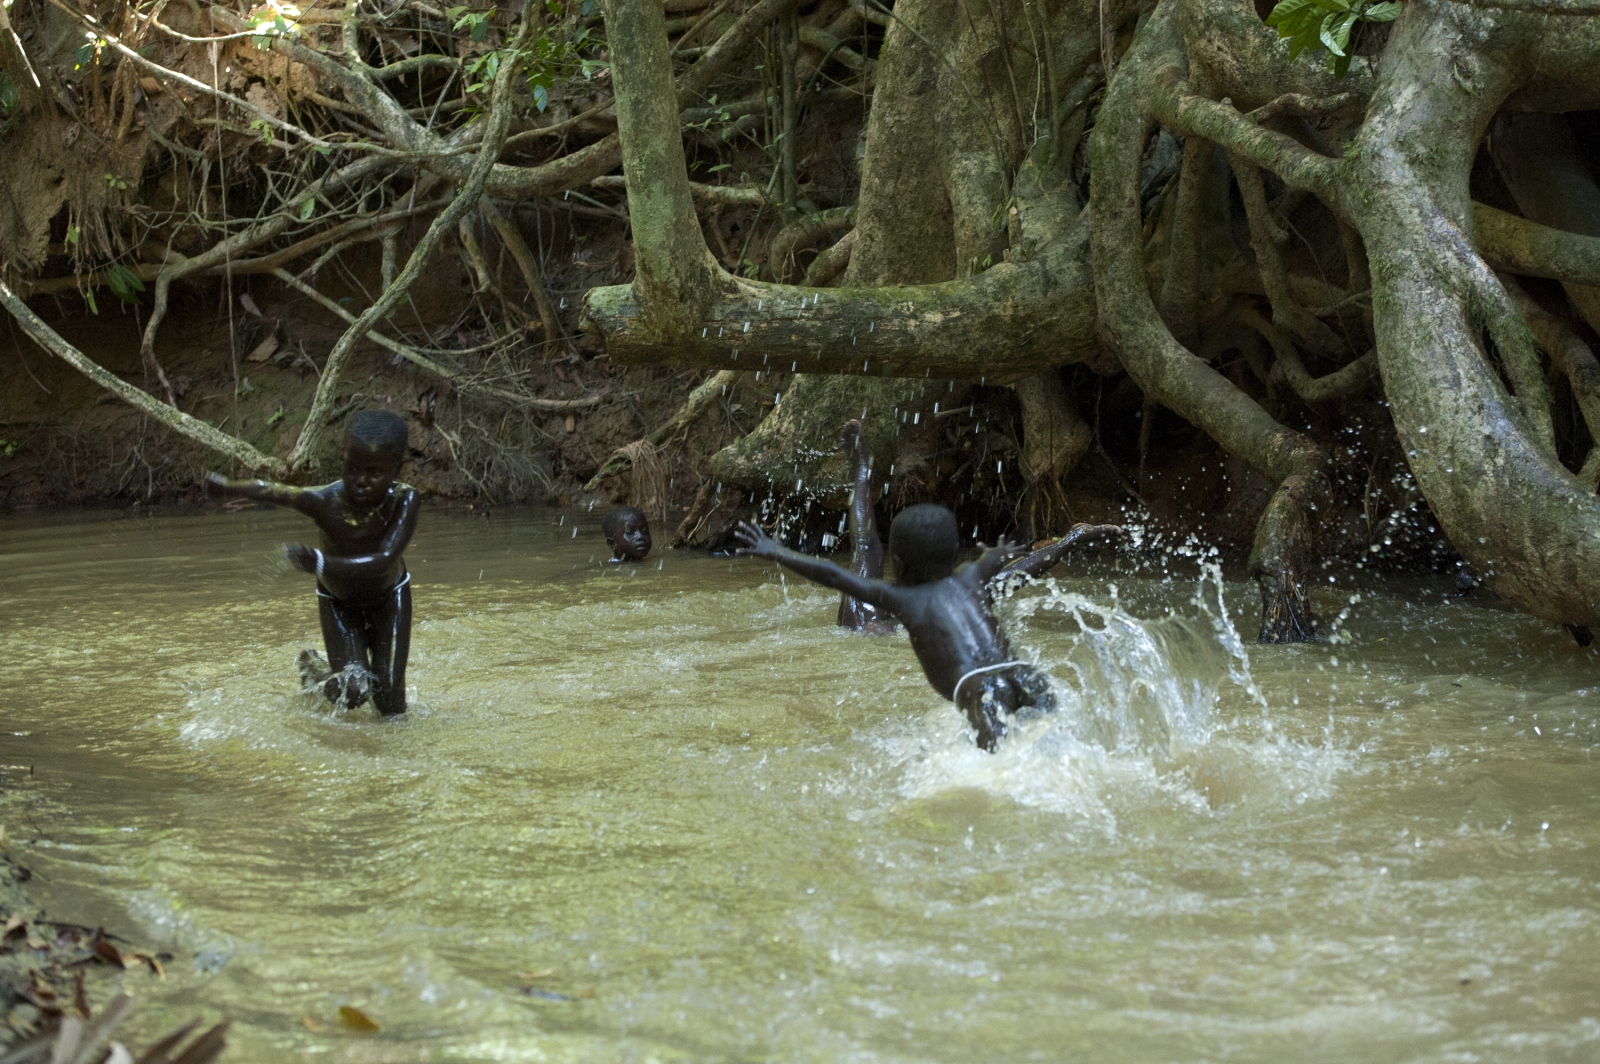 Art and Documentary Photography - Loading jarawa_beilvert__playing_in_the_jungle_water.jpg